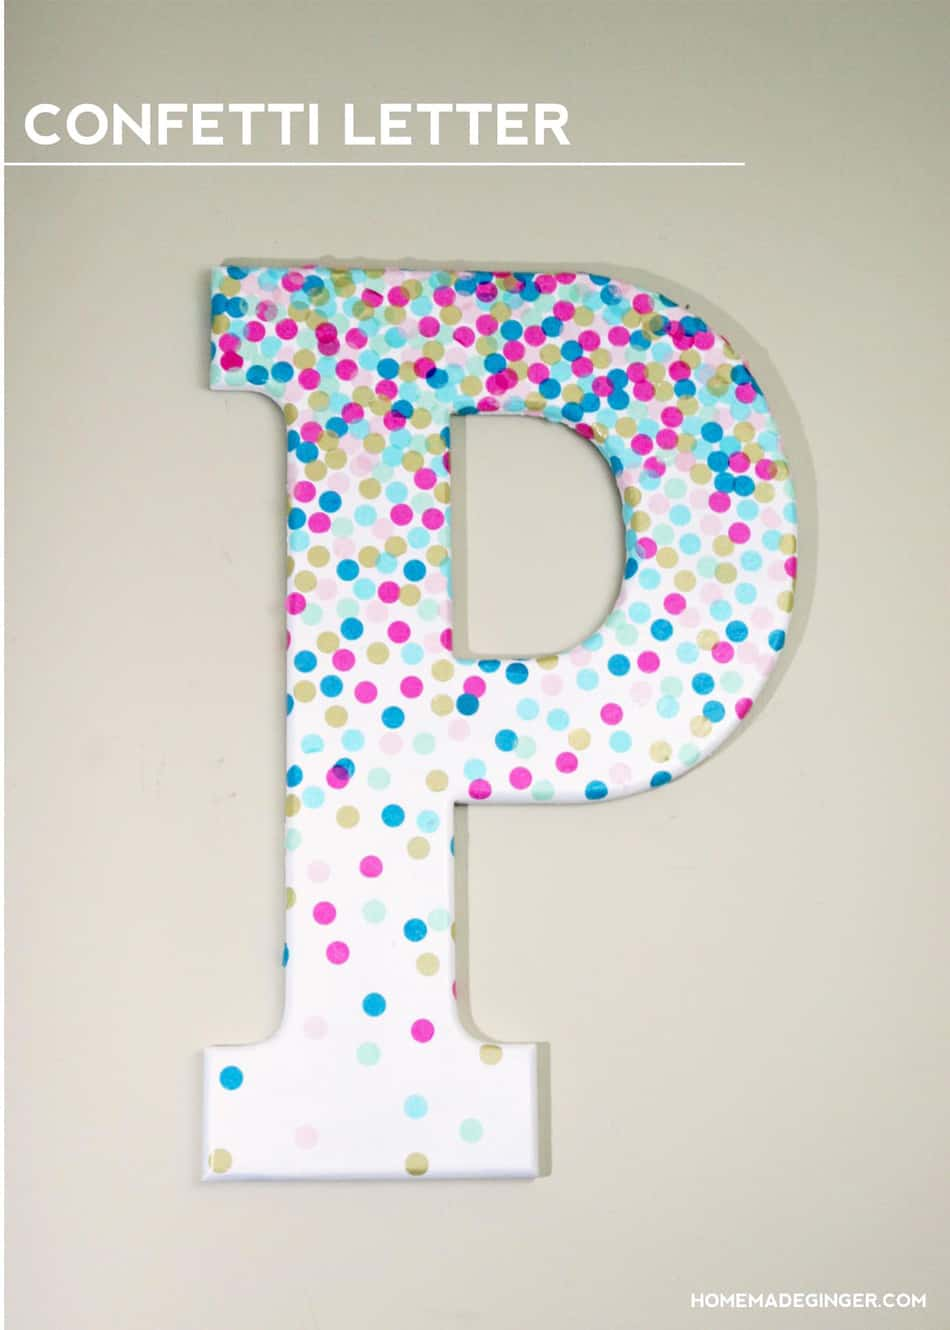 Diy wall art confetti letter homemade ginger for Baby room decoration letters